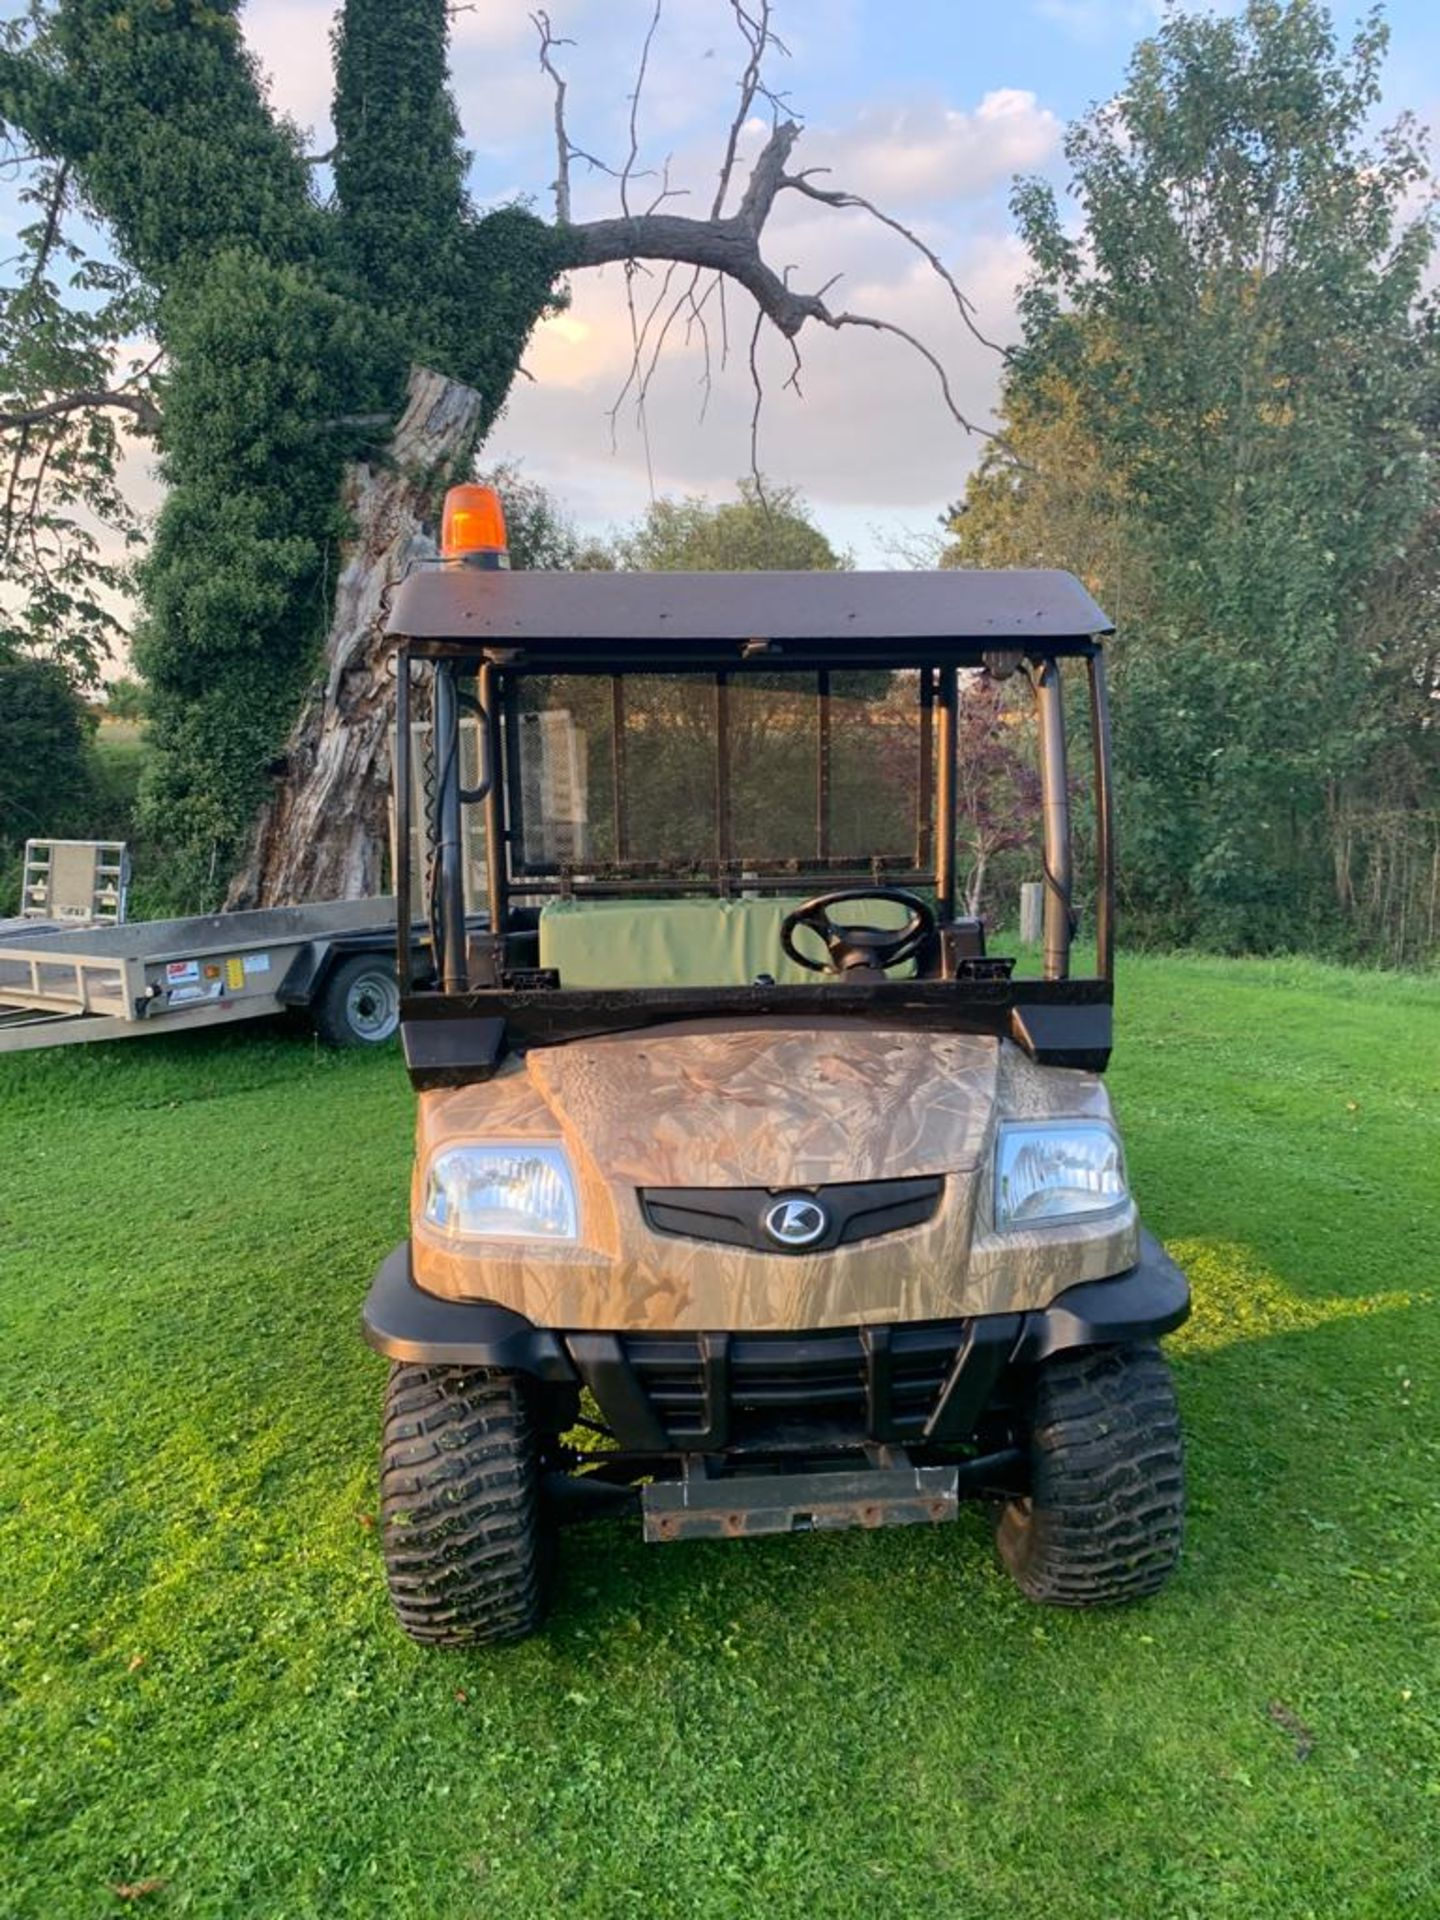 KUBOTA 4X4 DIESEL HYDRAULIC TIPPER BUGGY, RUNS, WORKS AND TIPS *PLUS VAT* - Image 4 of 22